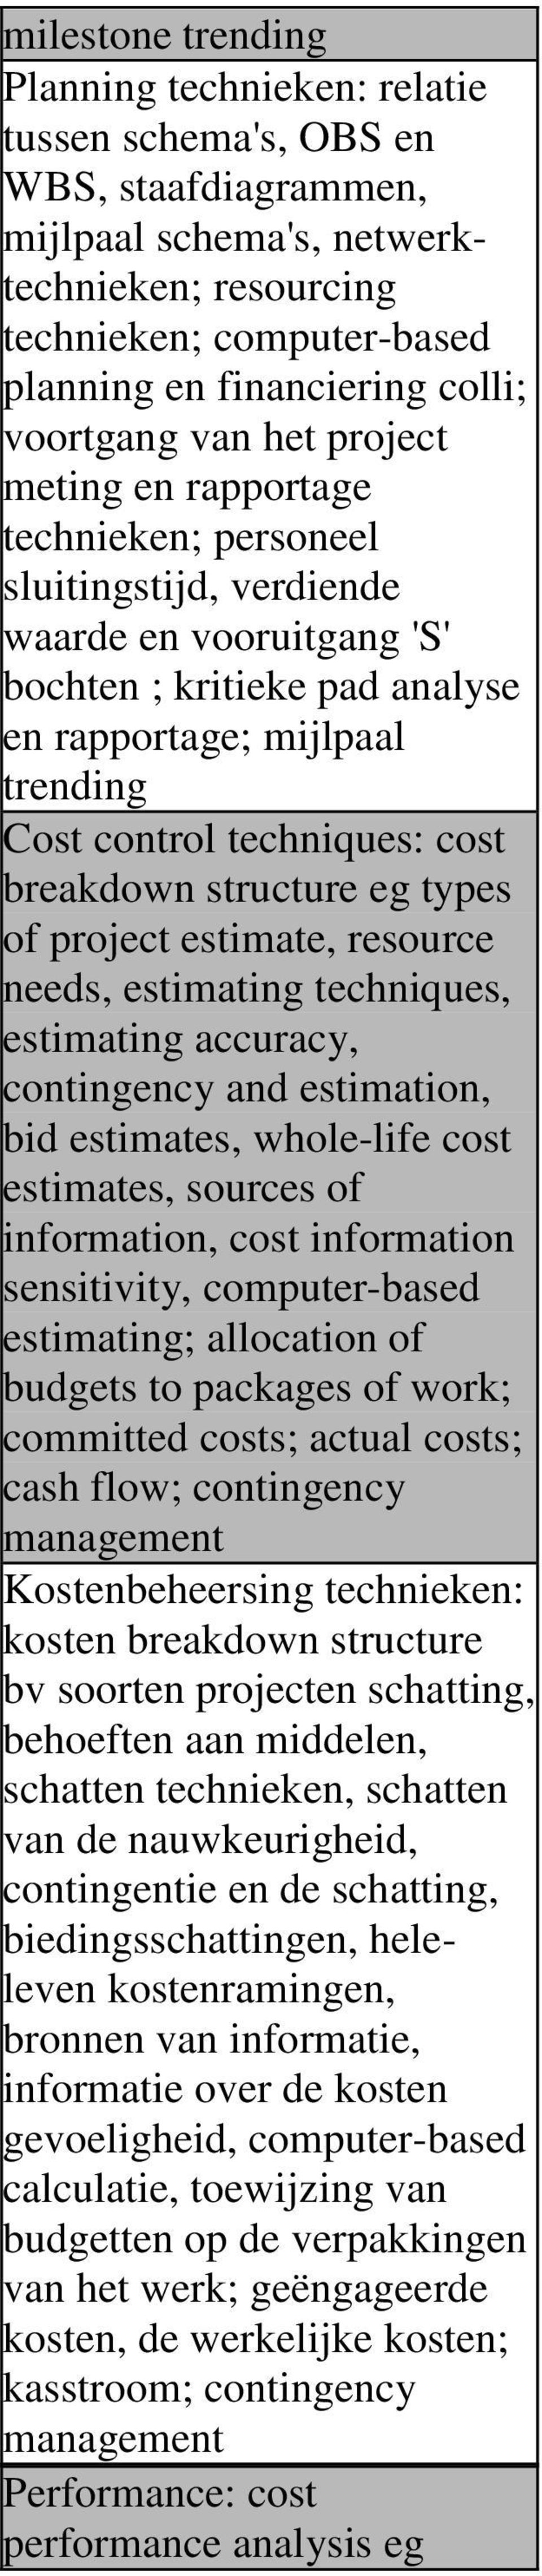 control techniques: cost breakdown structure eg types of project estimate, resource needs, estimating techniques, estimating accuracy, contingency and estimation, bid estimates, whole-life cost